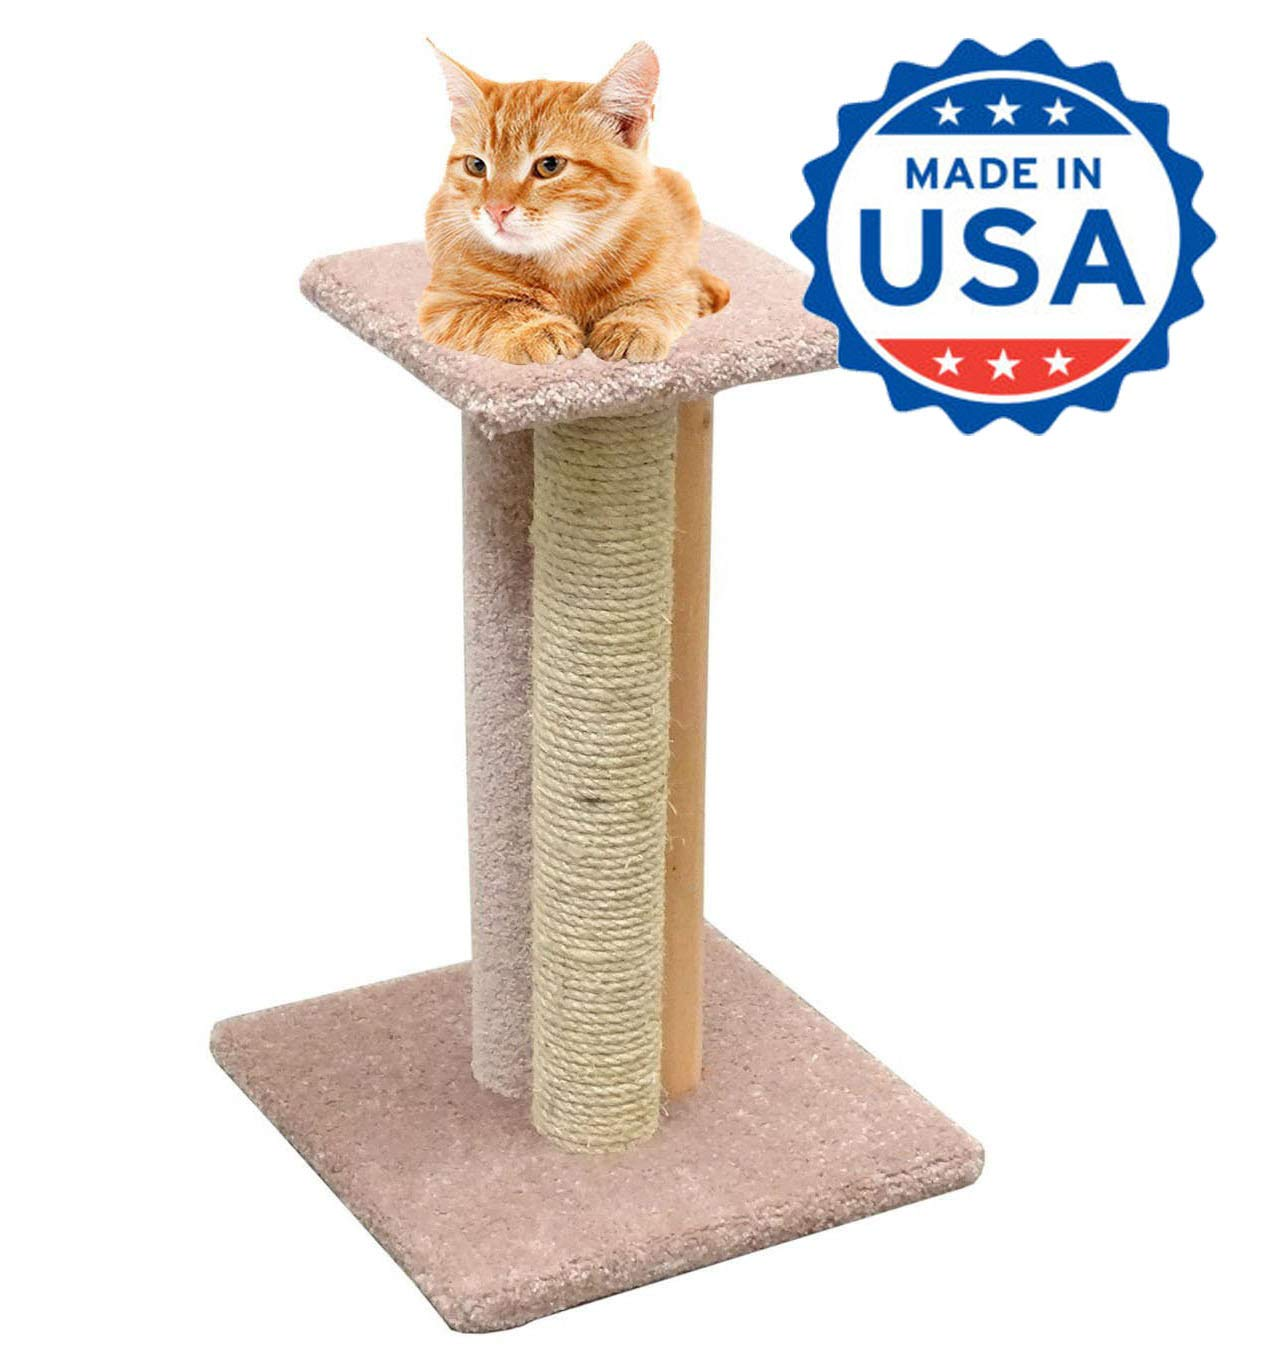 CozyCatFurniture 24 inches Wood Cat Scratching Post, Made in USA, Triple Cat Scratcher Perch, Beige Carpet by CozyCatFurniture